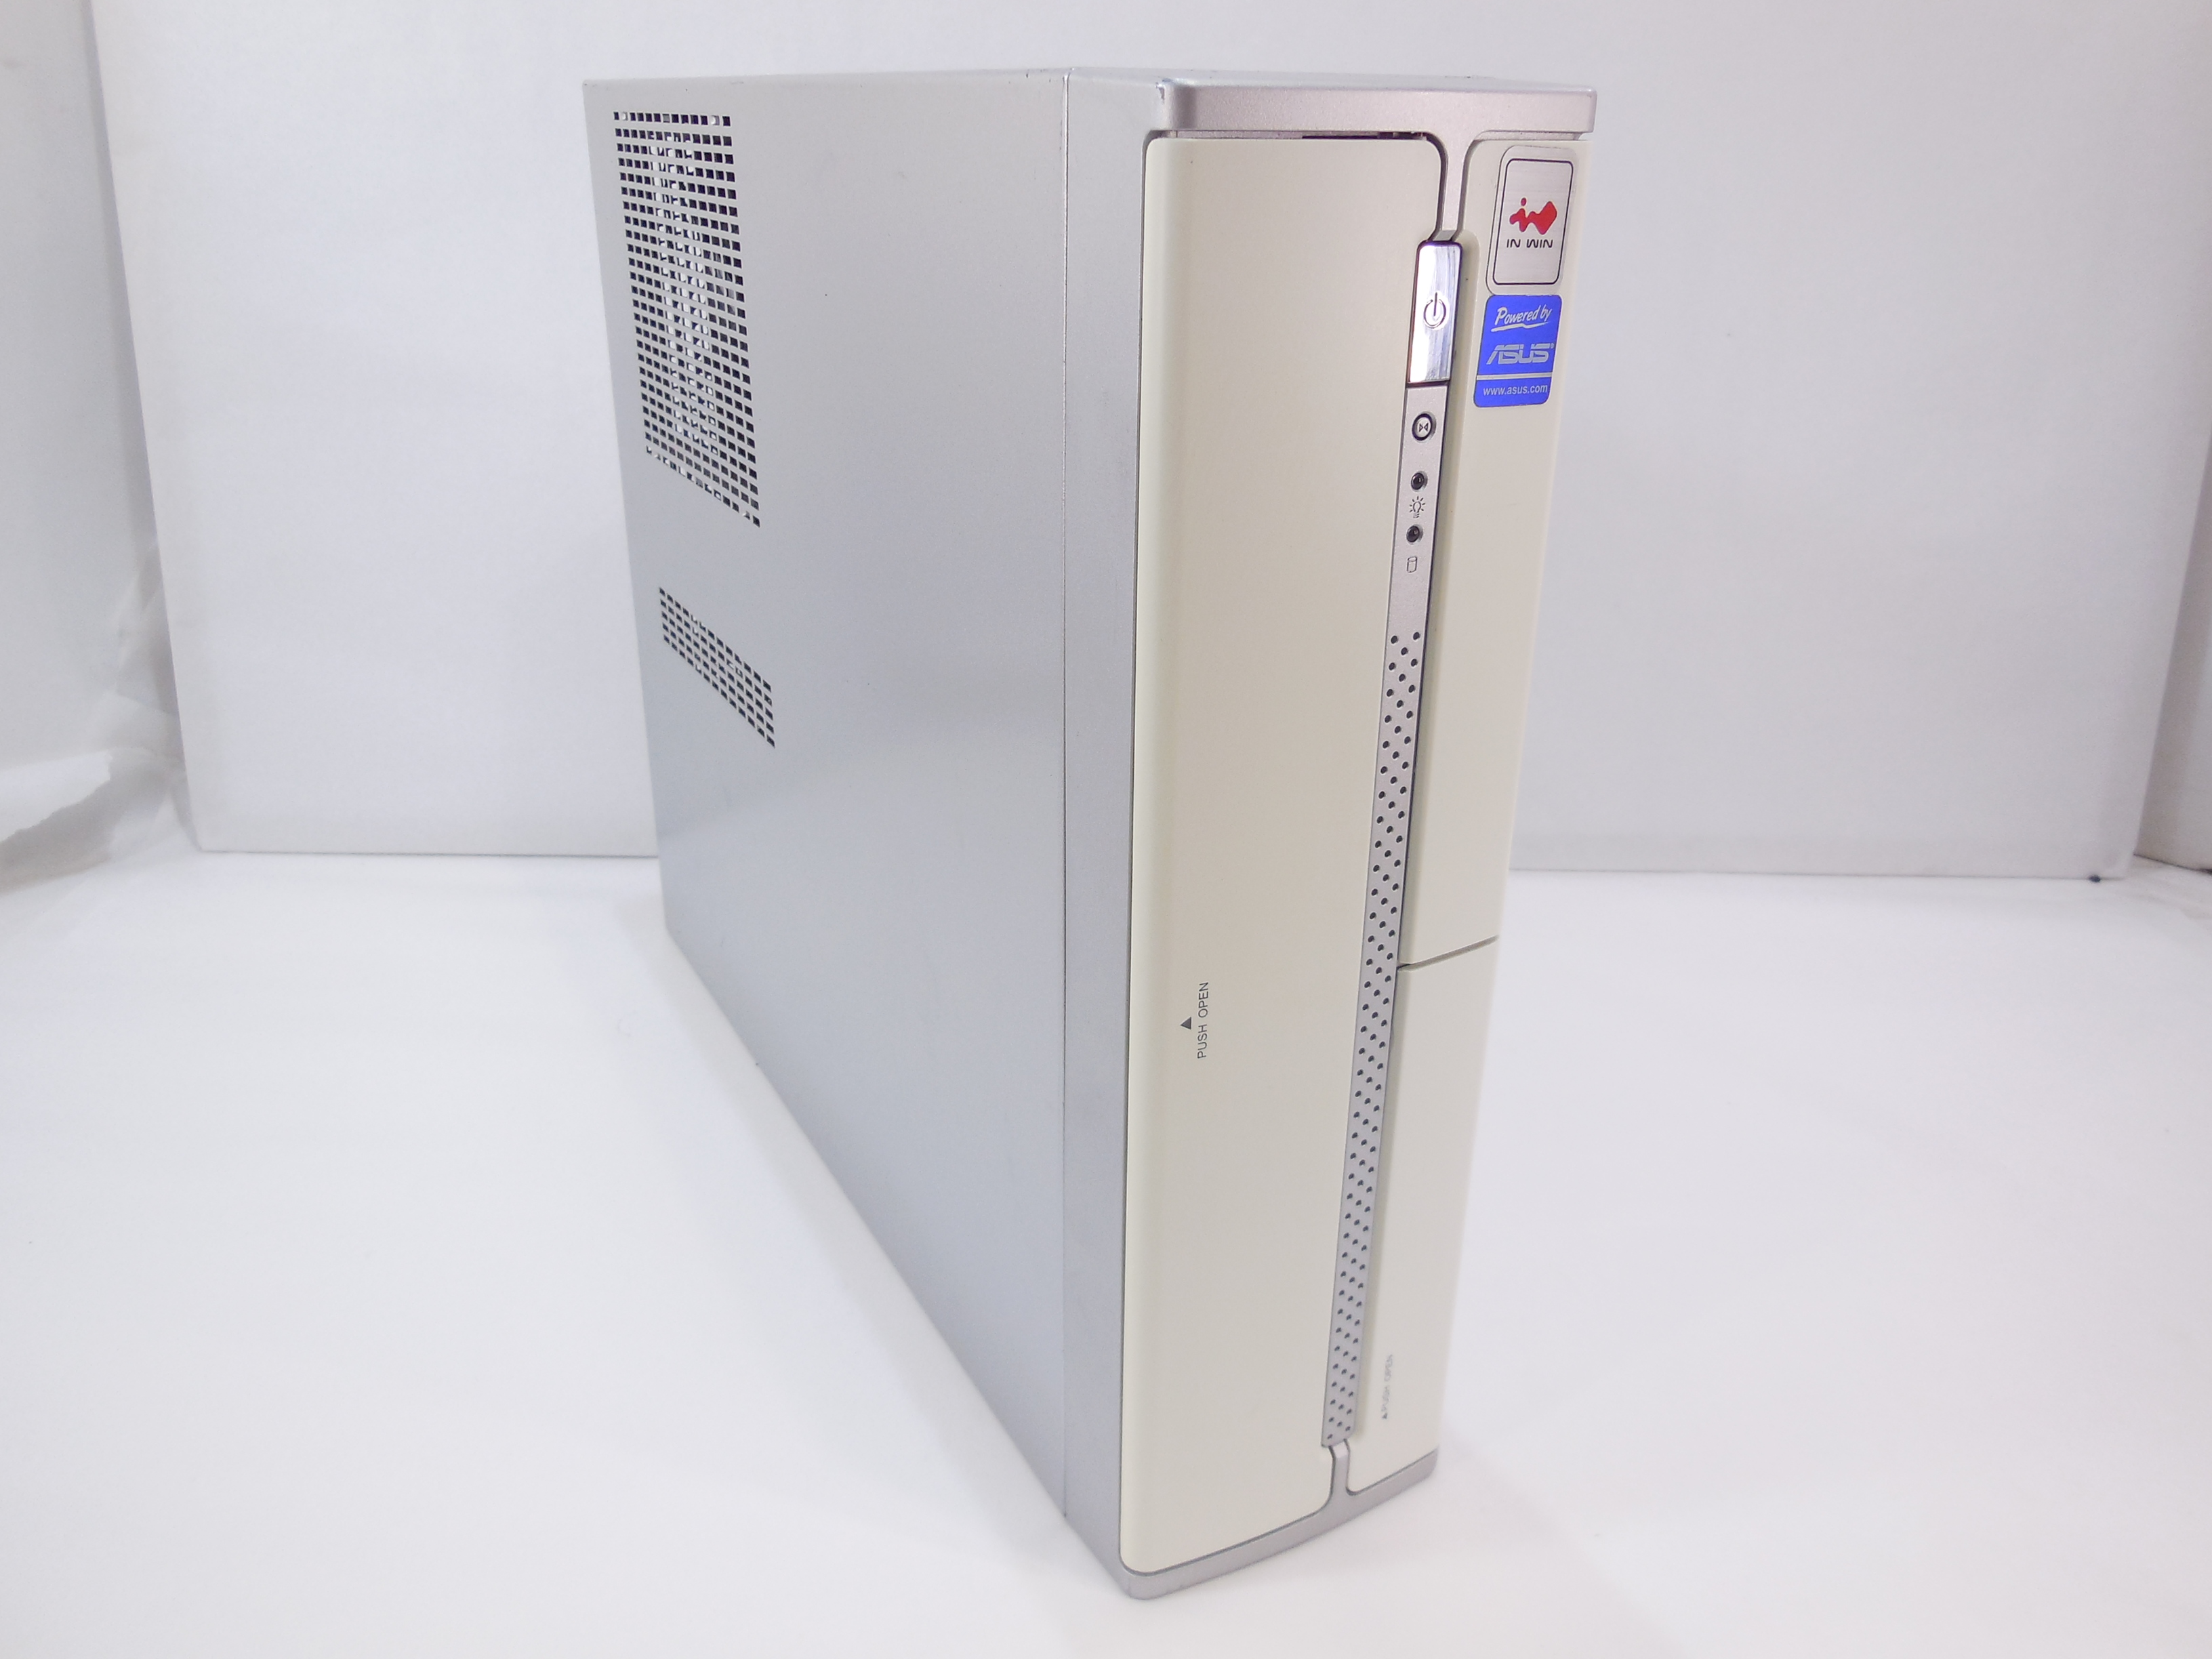 Комп. Intel Pent. Dual-Core E5400 2.70Ghz - Pic n 283426